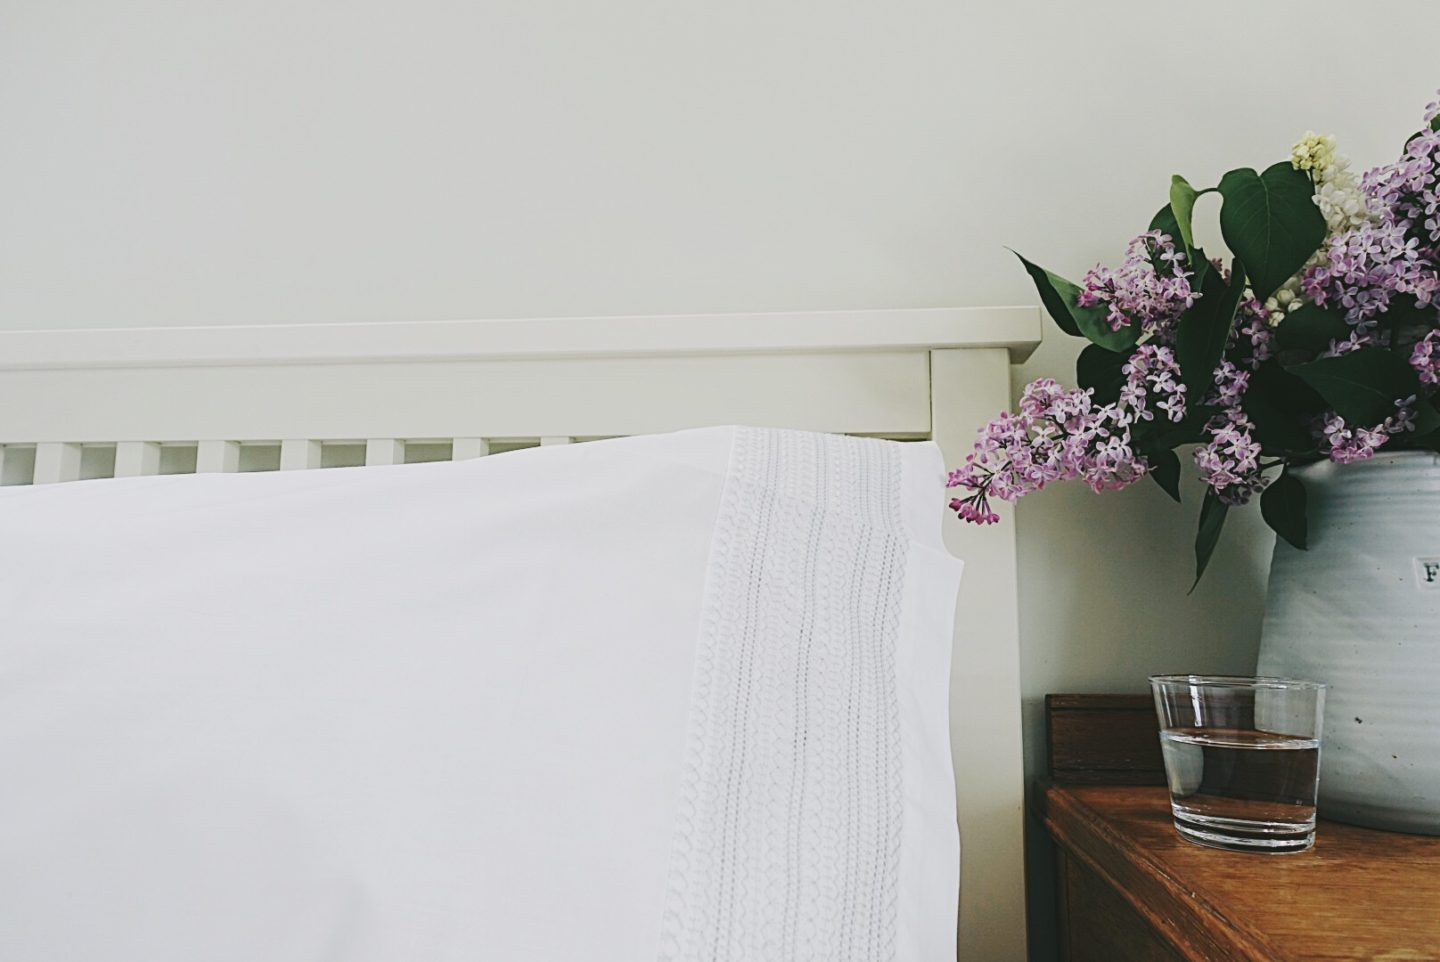 Creating the hotel feel at home: The White Company 100% Cotton Bed Linen